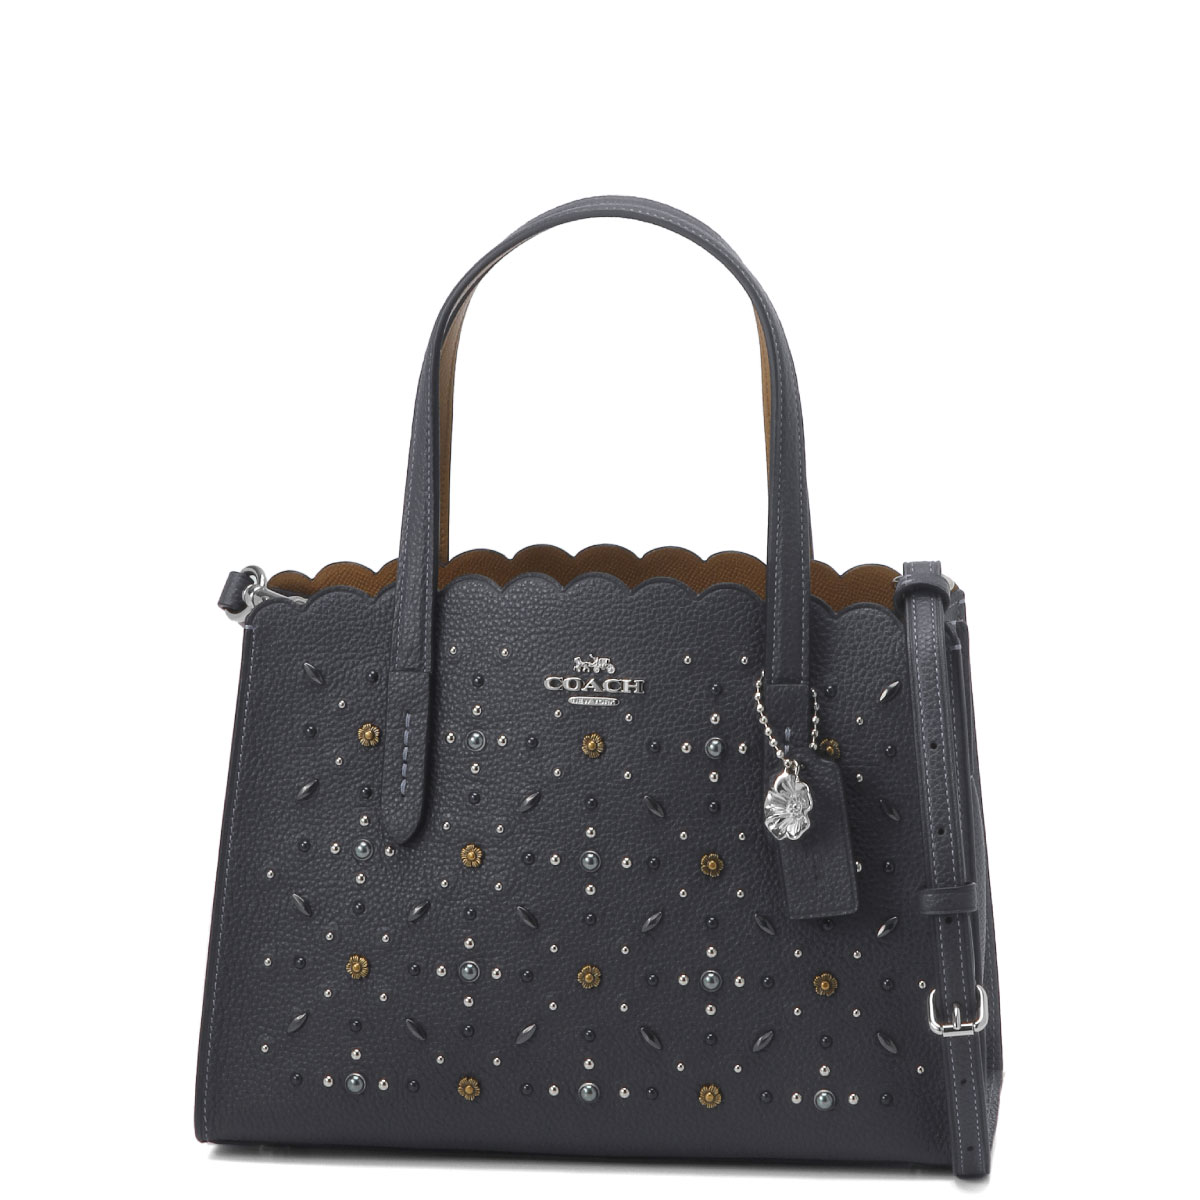 29528 coach COACH bag lady SVBHP shoulders handbag CHARLIE CARRYALL 28  Charlie carry oar 28 SV MIDNIGHT NAVY dark blue belonging to 71558ae8573dc